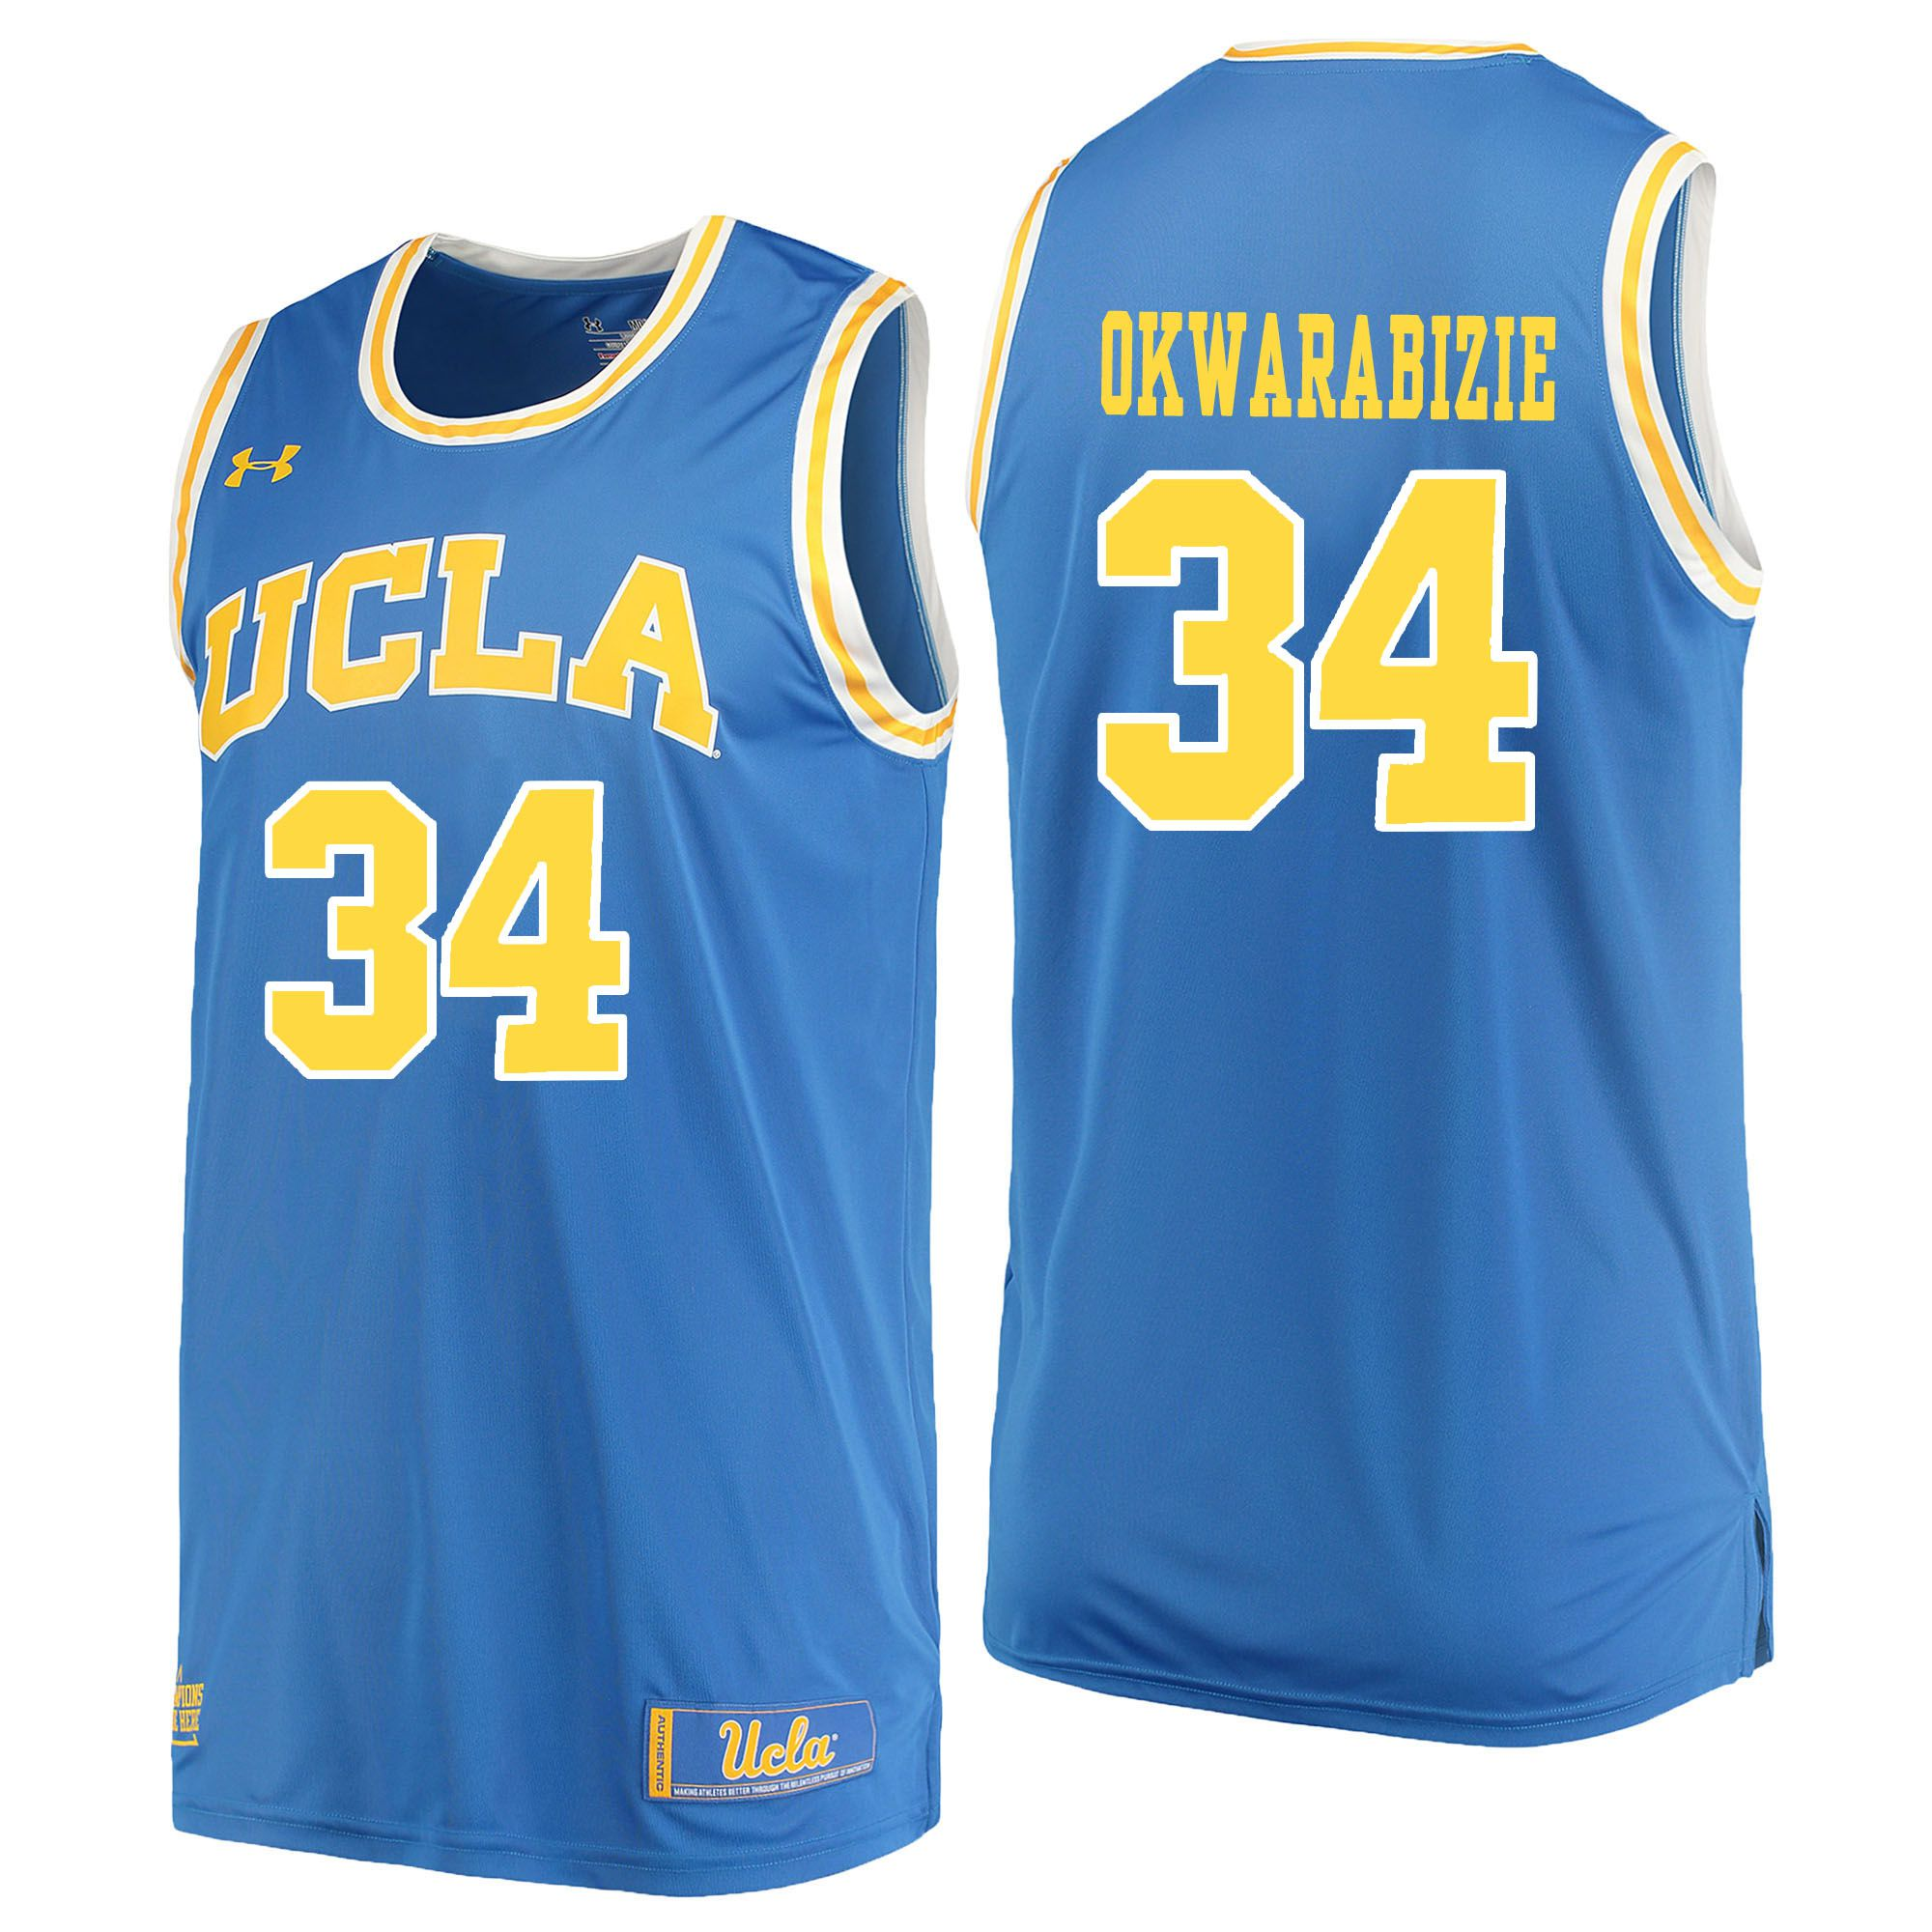 Men UCLA UA 34 Okwarabizie Light Blue Customized NCAA Jerseys